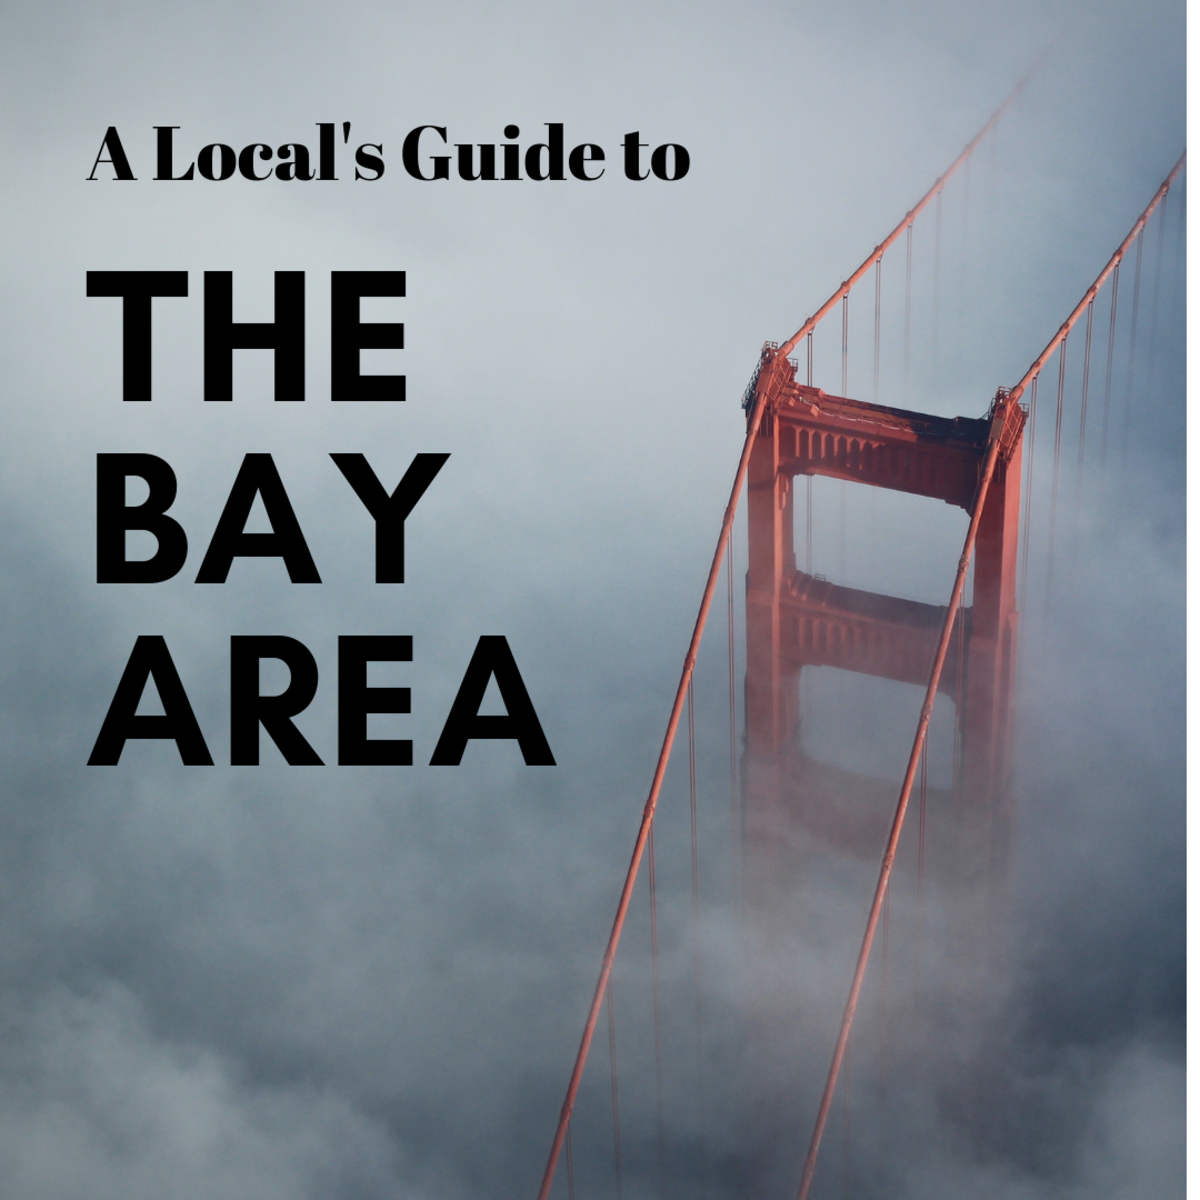 A Local's Guide to Visiting Silicon Valley and the Bay Area: Attractions, Culture, Tech, & Nature